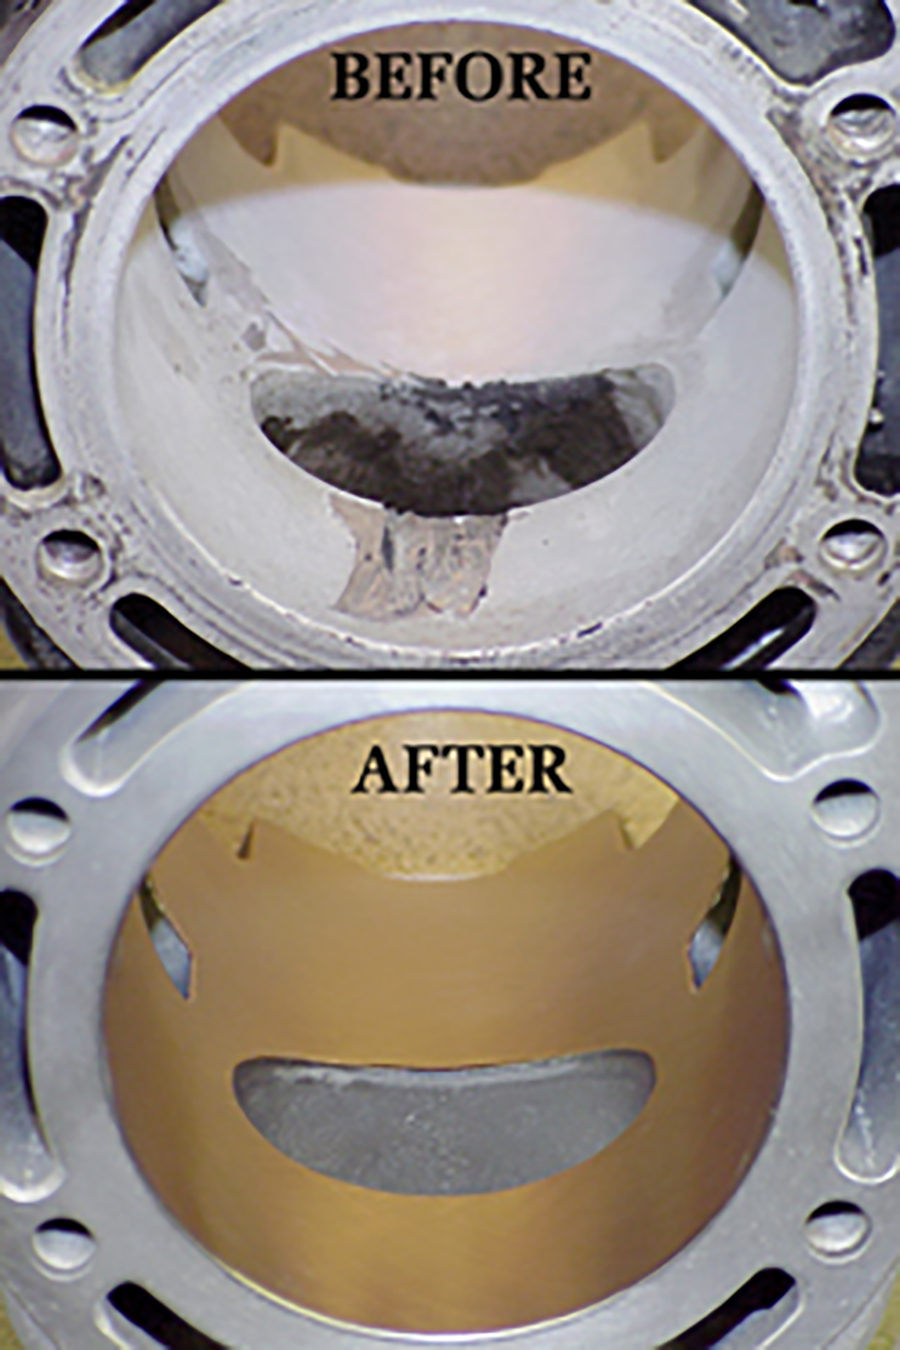 Before and After photos of cylinders